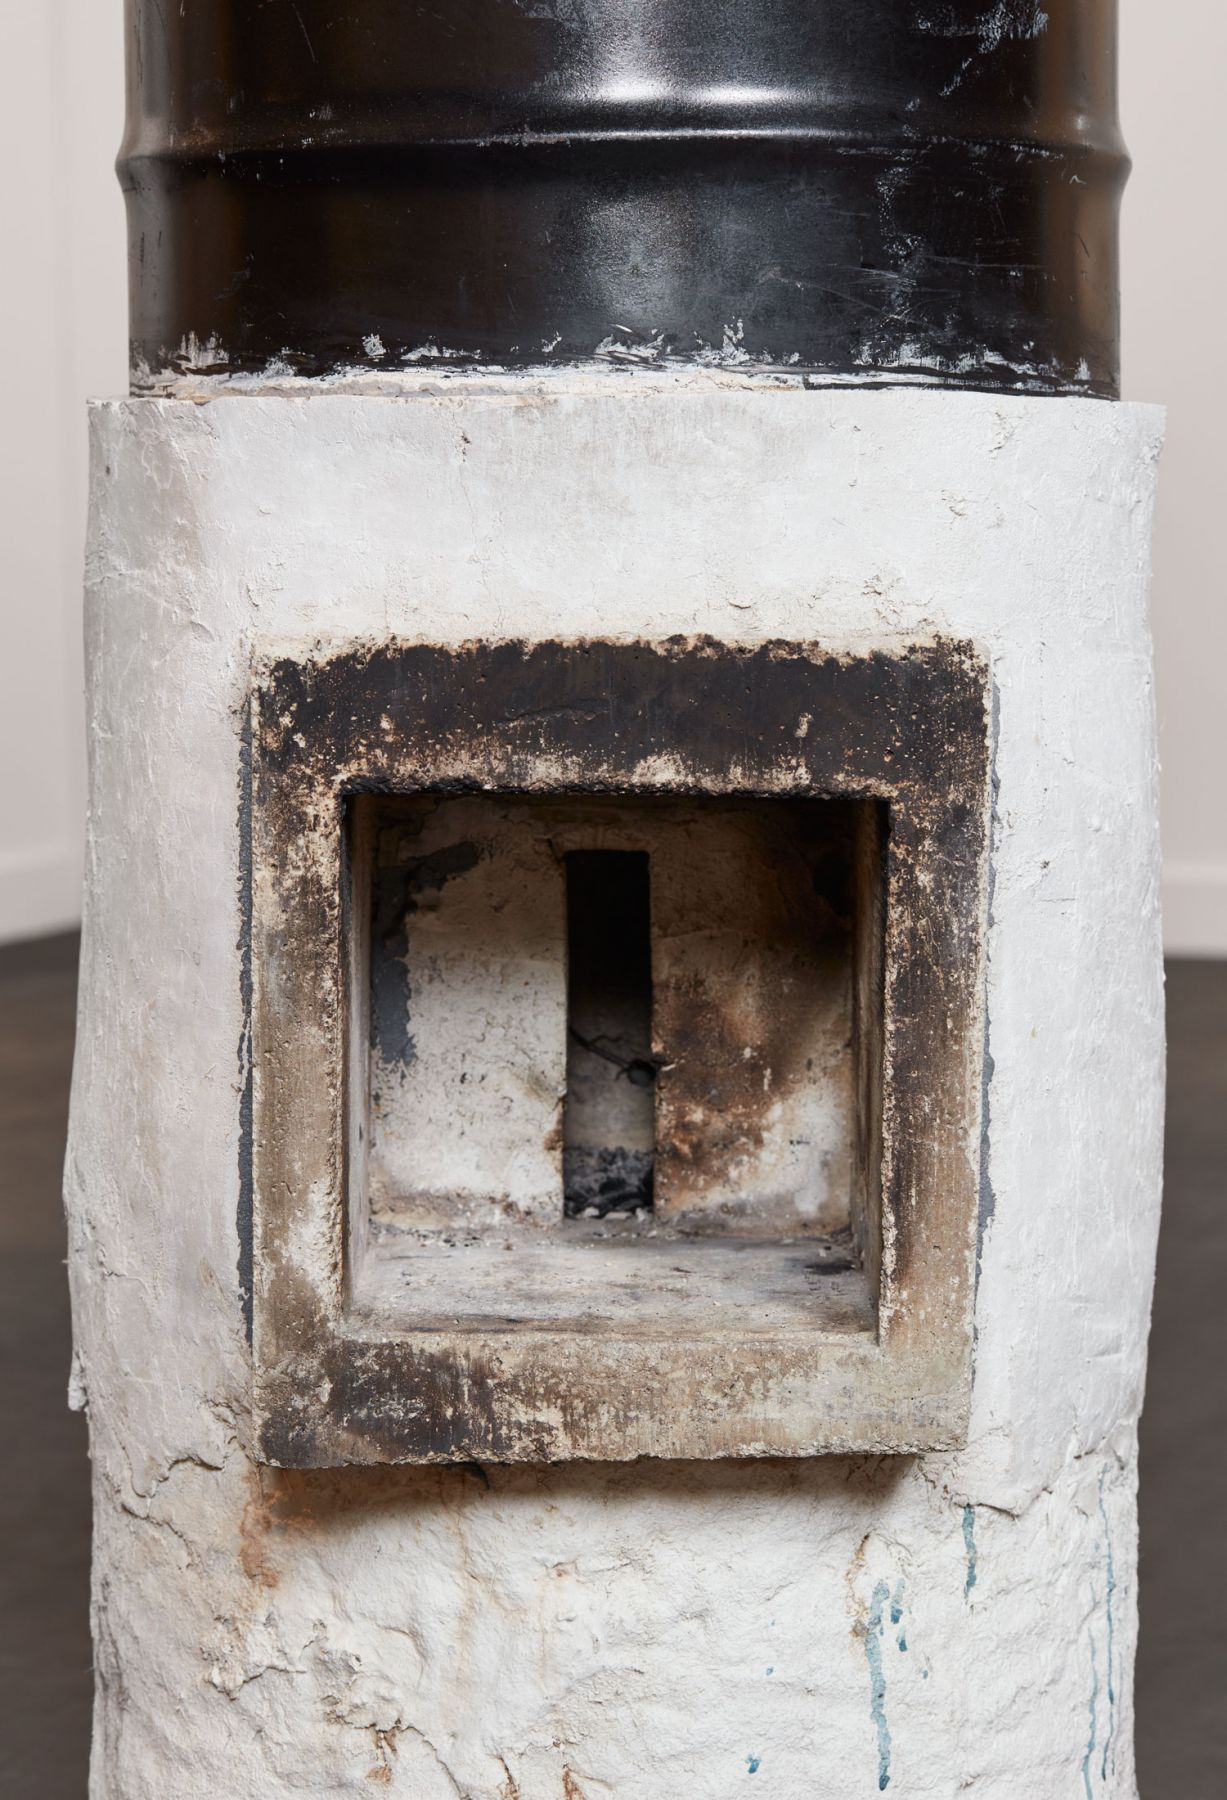 Oscar Tuazon Rocket Stove (LAWS), 2019